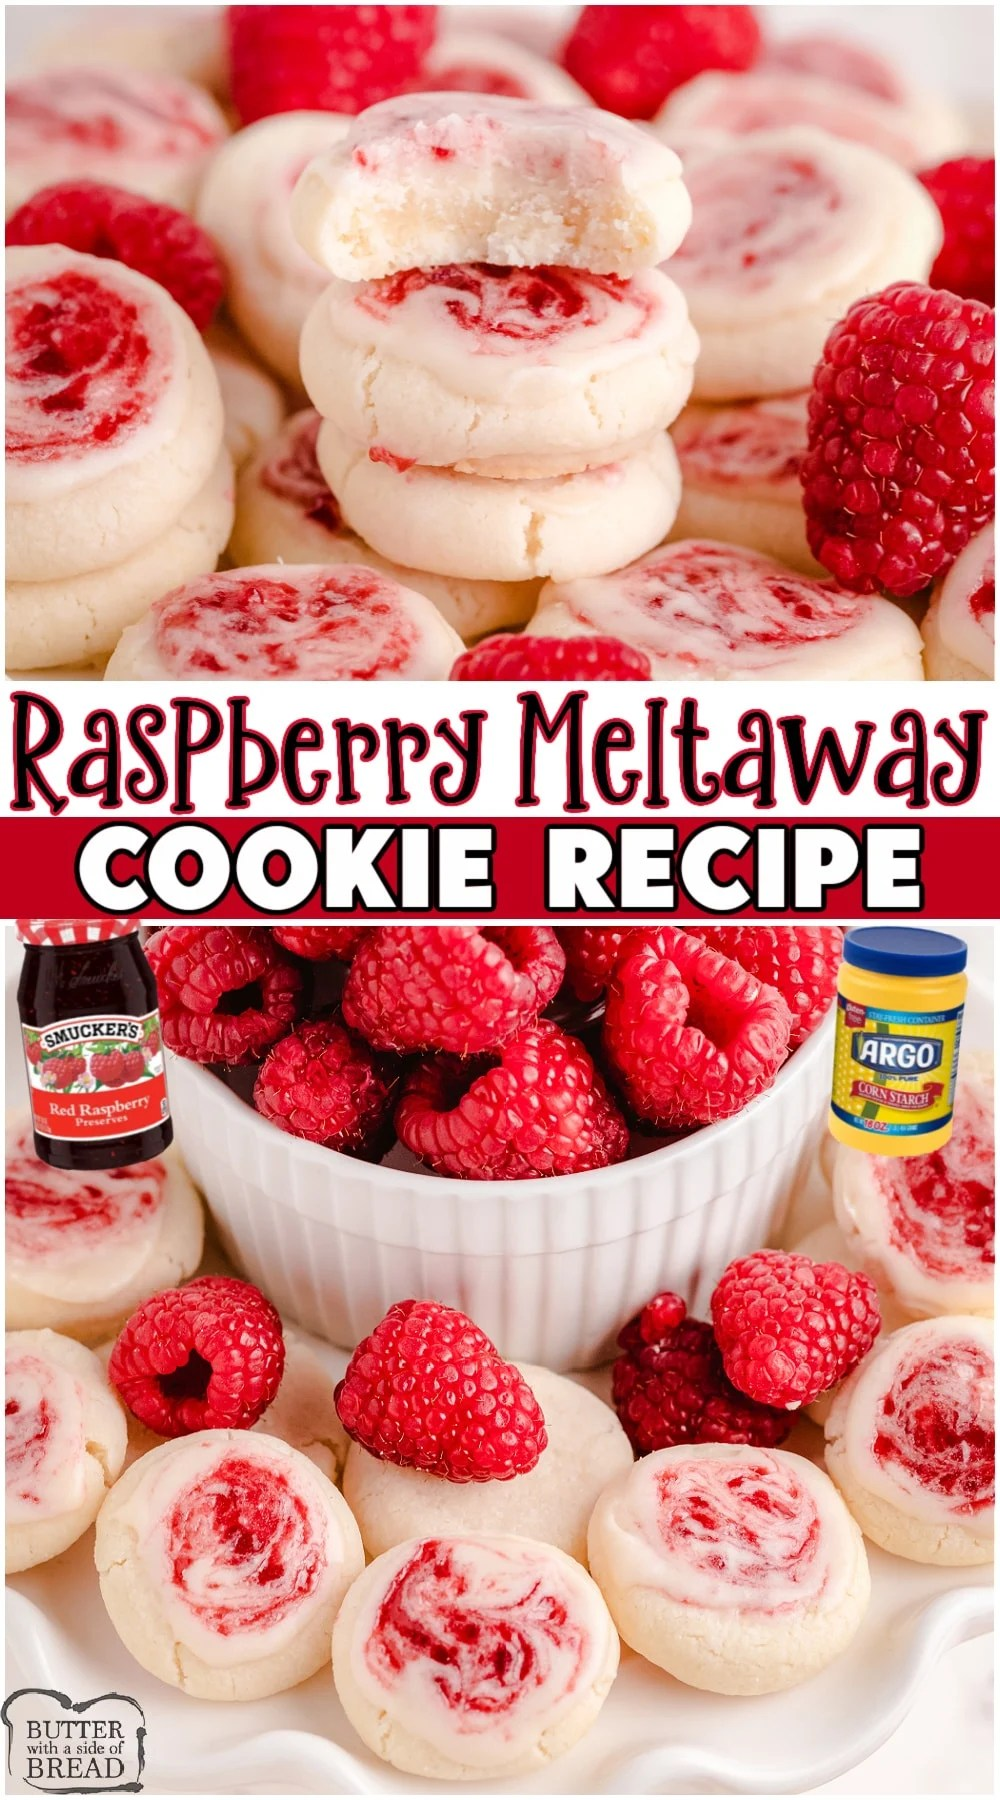 Raspberry Meltaway Cookies are soft & delicate & truly melt in your mouth! Perfect vanilla cookies topped with a sweet glaze swirled with raspberry jam. #cookies #raspberry #meltaways #baking #dessert #easyrecipe from BUTTER WITH A SIDE OF BREAD